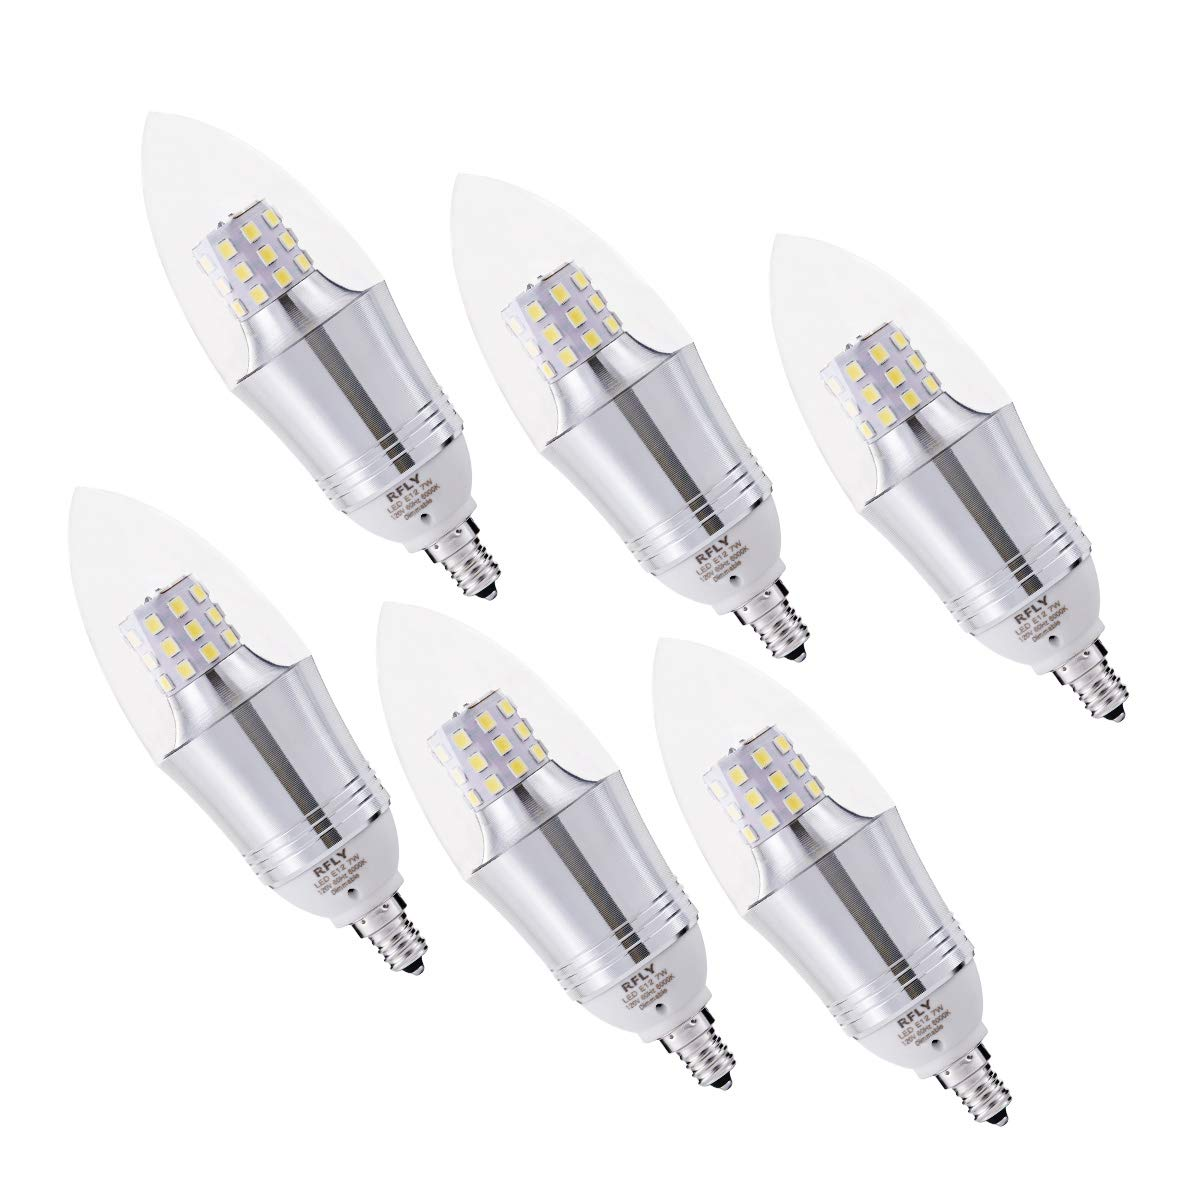 RFLY 7W E12 Bulb, LED Candelabra Light Bulbs 60-75W Incandescent Equivalent, Decorate Candle Base E12 Dimmable, Chandelier Bulb, Daylight White 6000K, 6 Packs